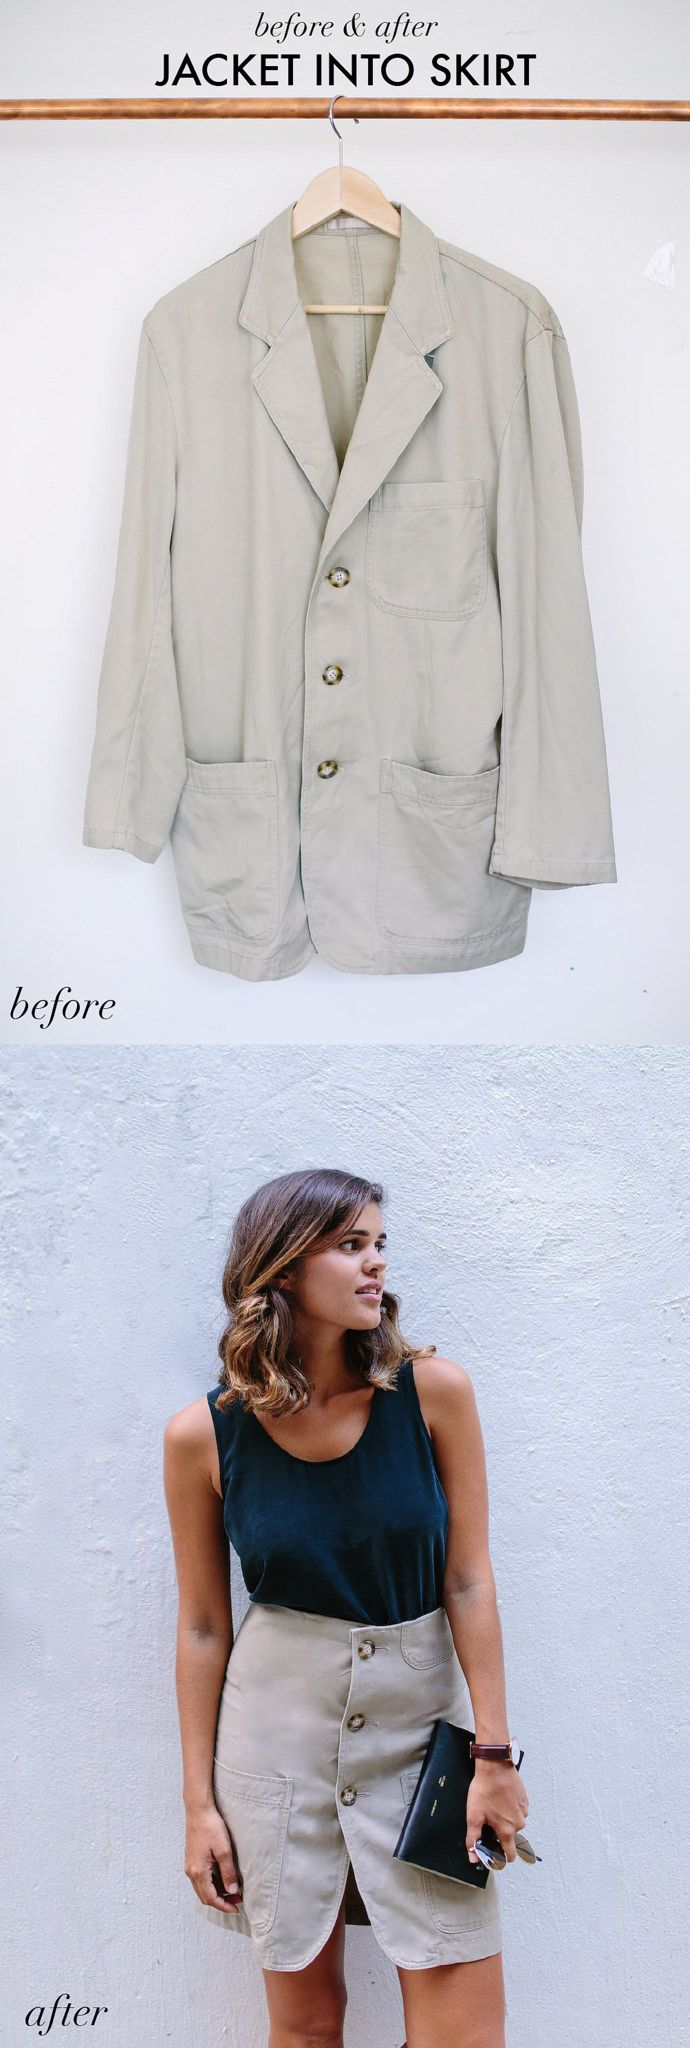 Turn a jacket into a skirt  You need: A jacket Scissors A needle and thread or sewing machine.